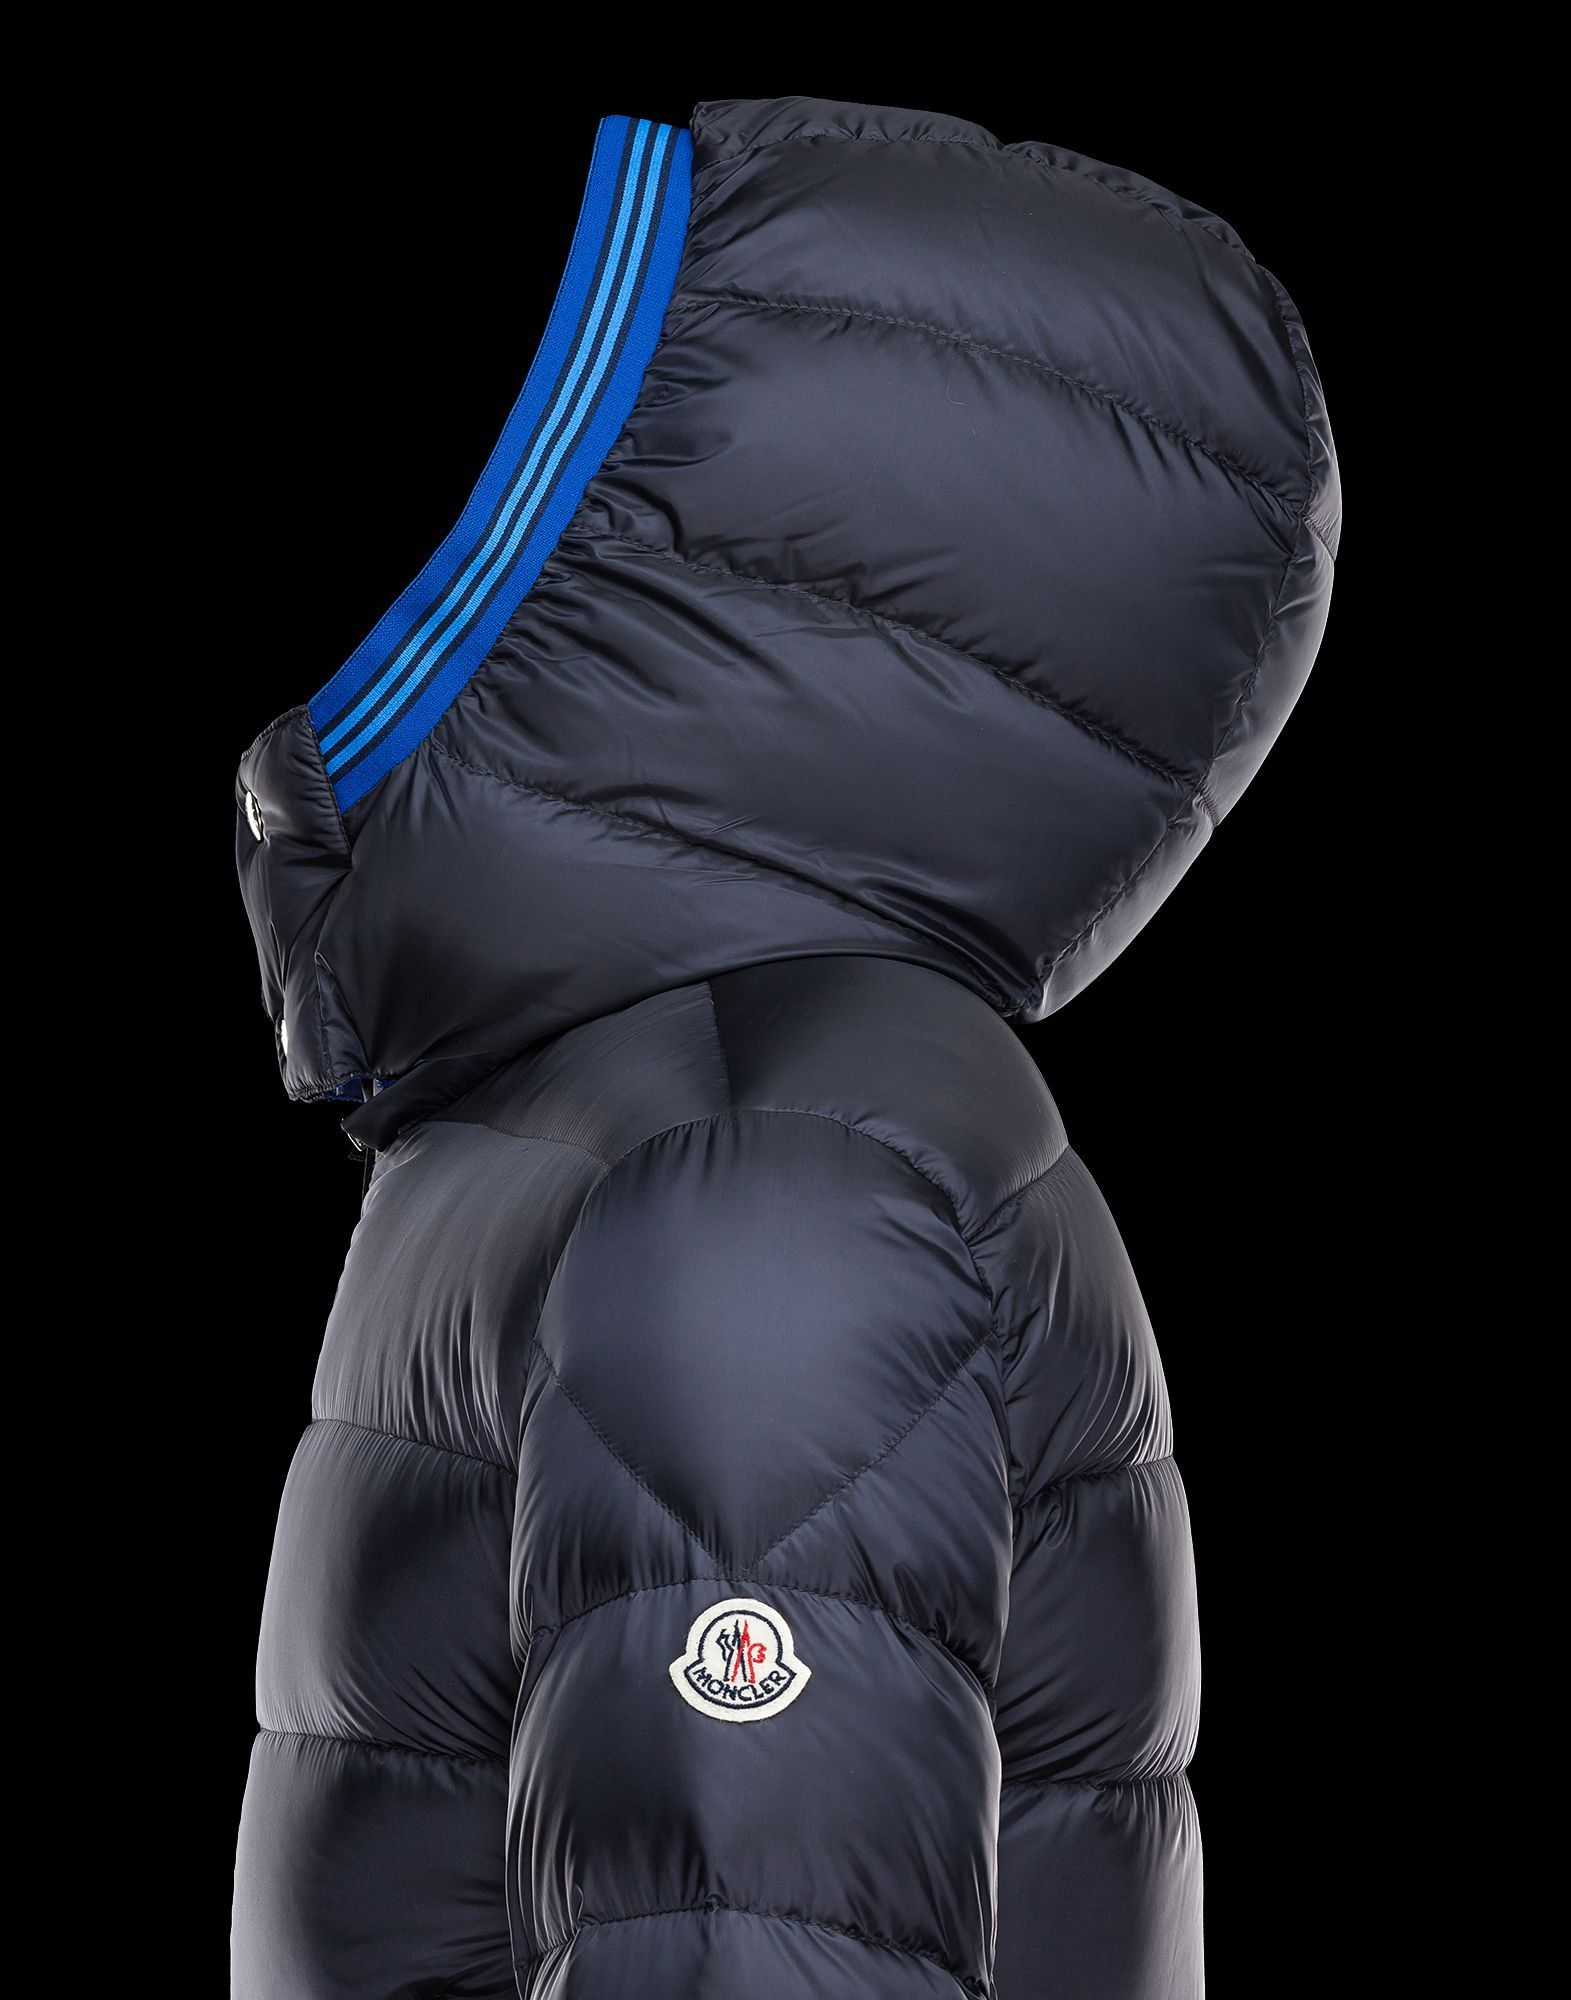 ff60028d2 Pin by corey stephens on technical | Moncler jacket women, Moncler ...